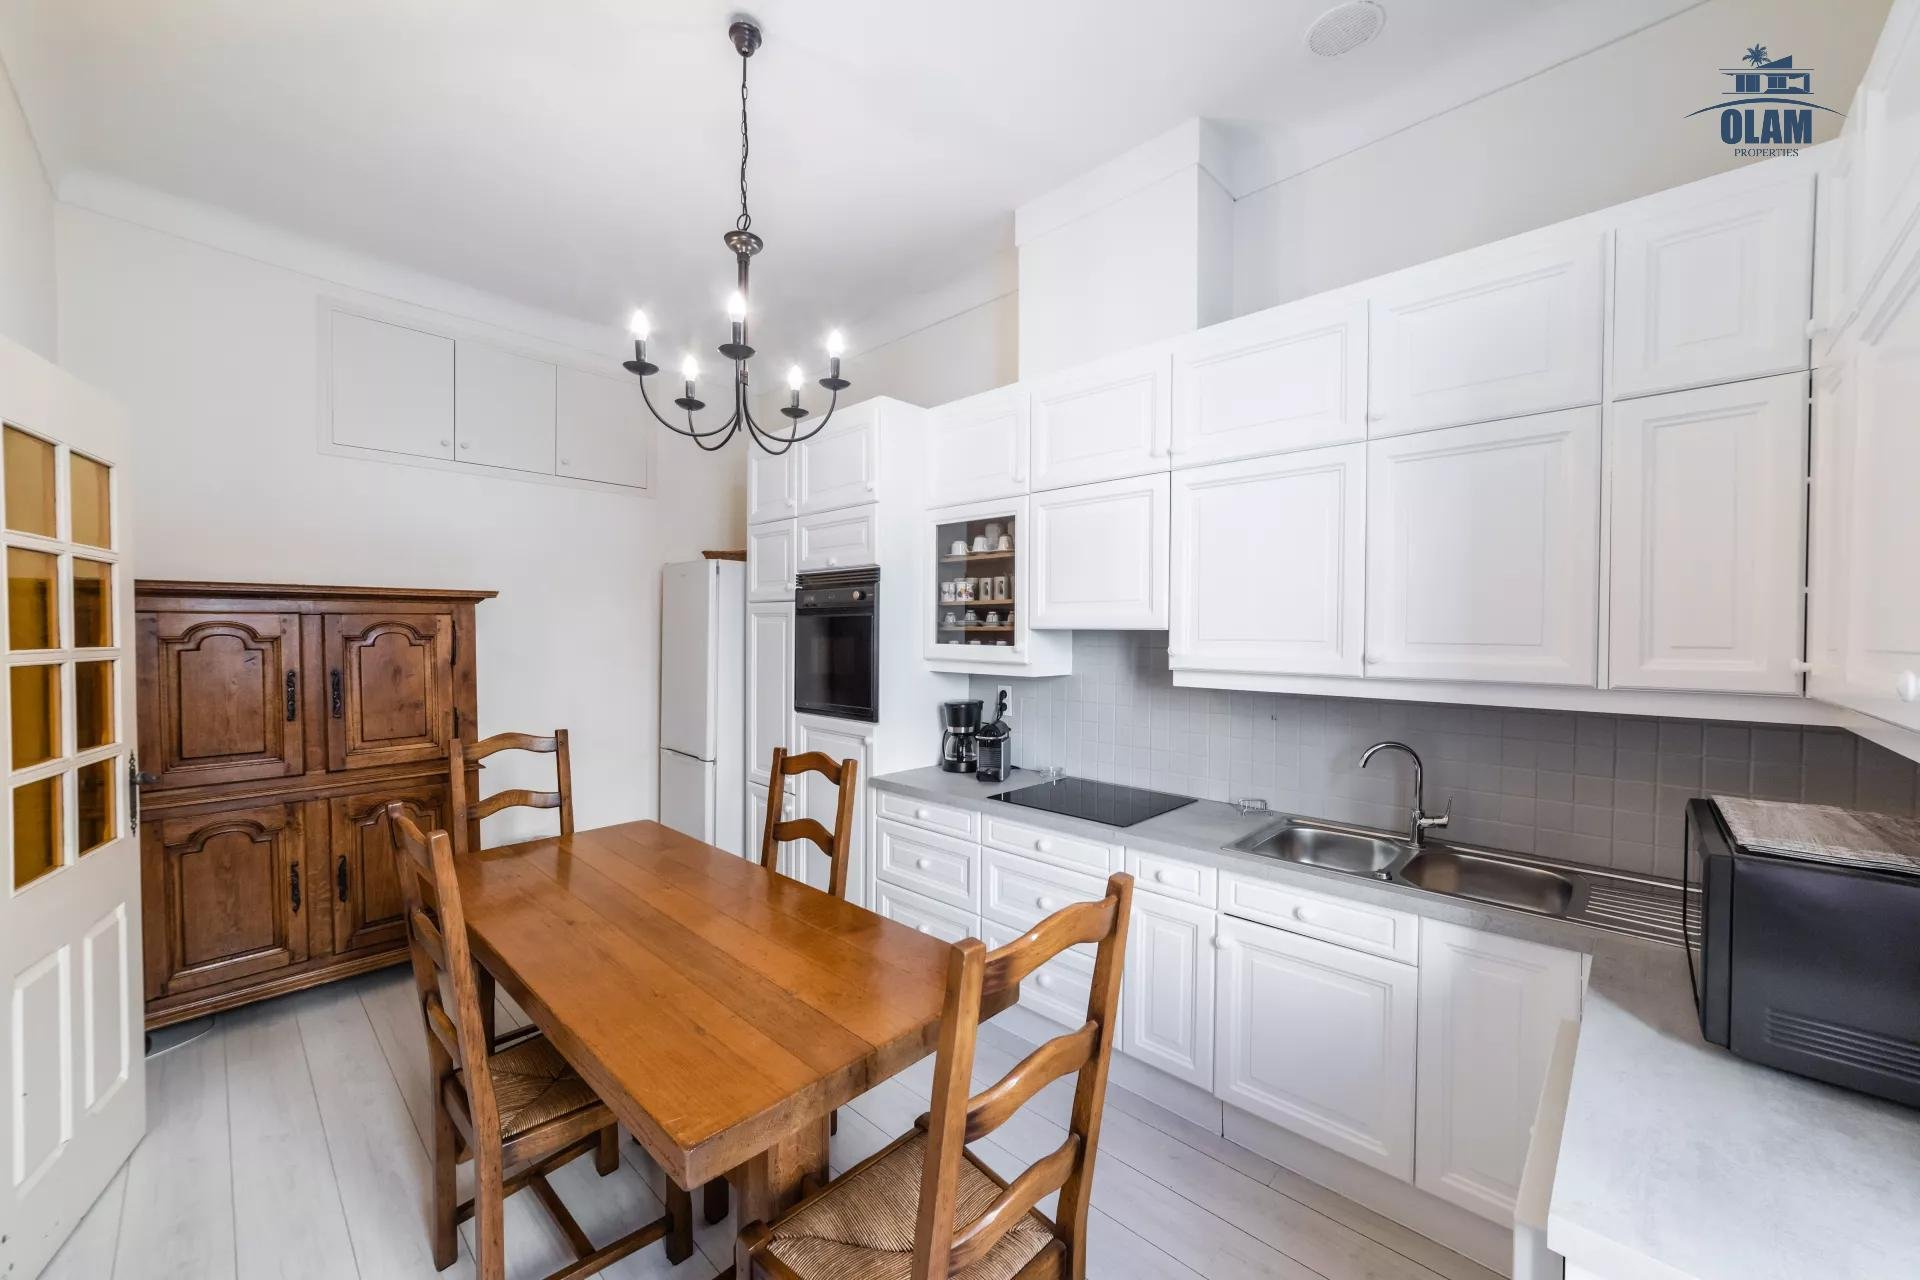 LARGE 3 ROOMS 100M ² CENTER CANNES - CLOSE TO THE PALAIS